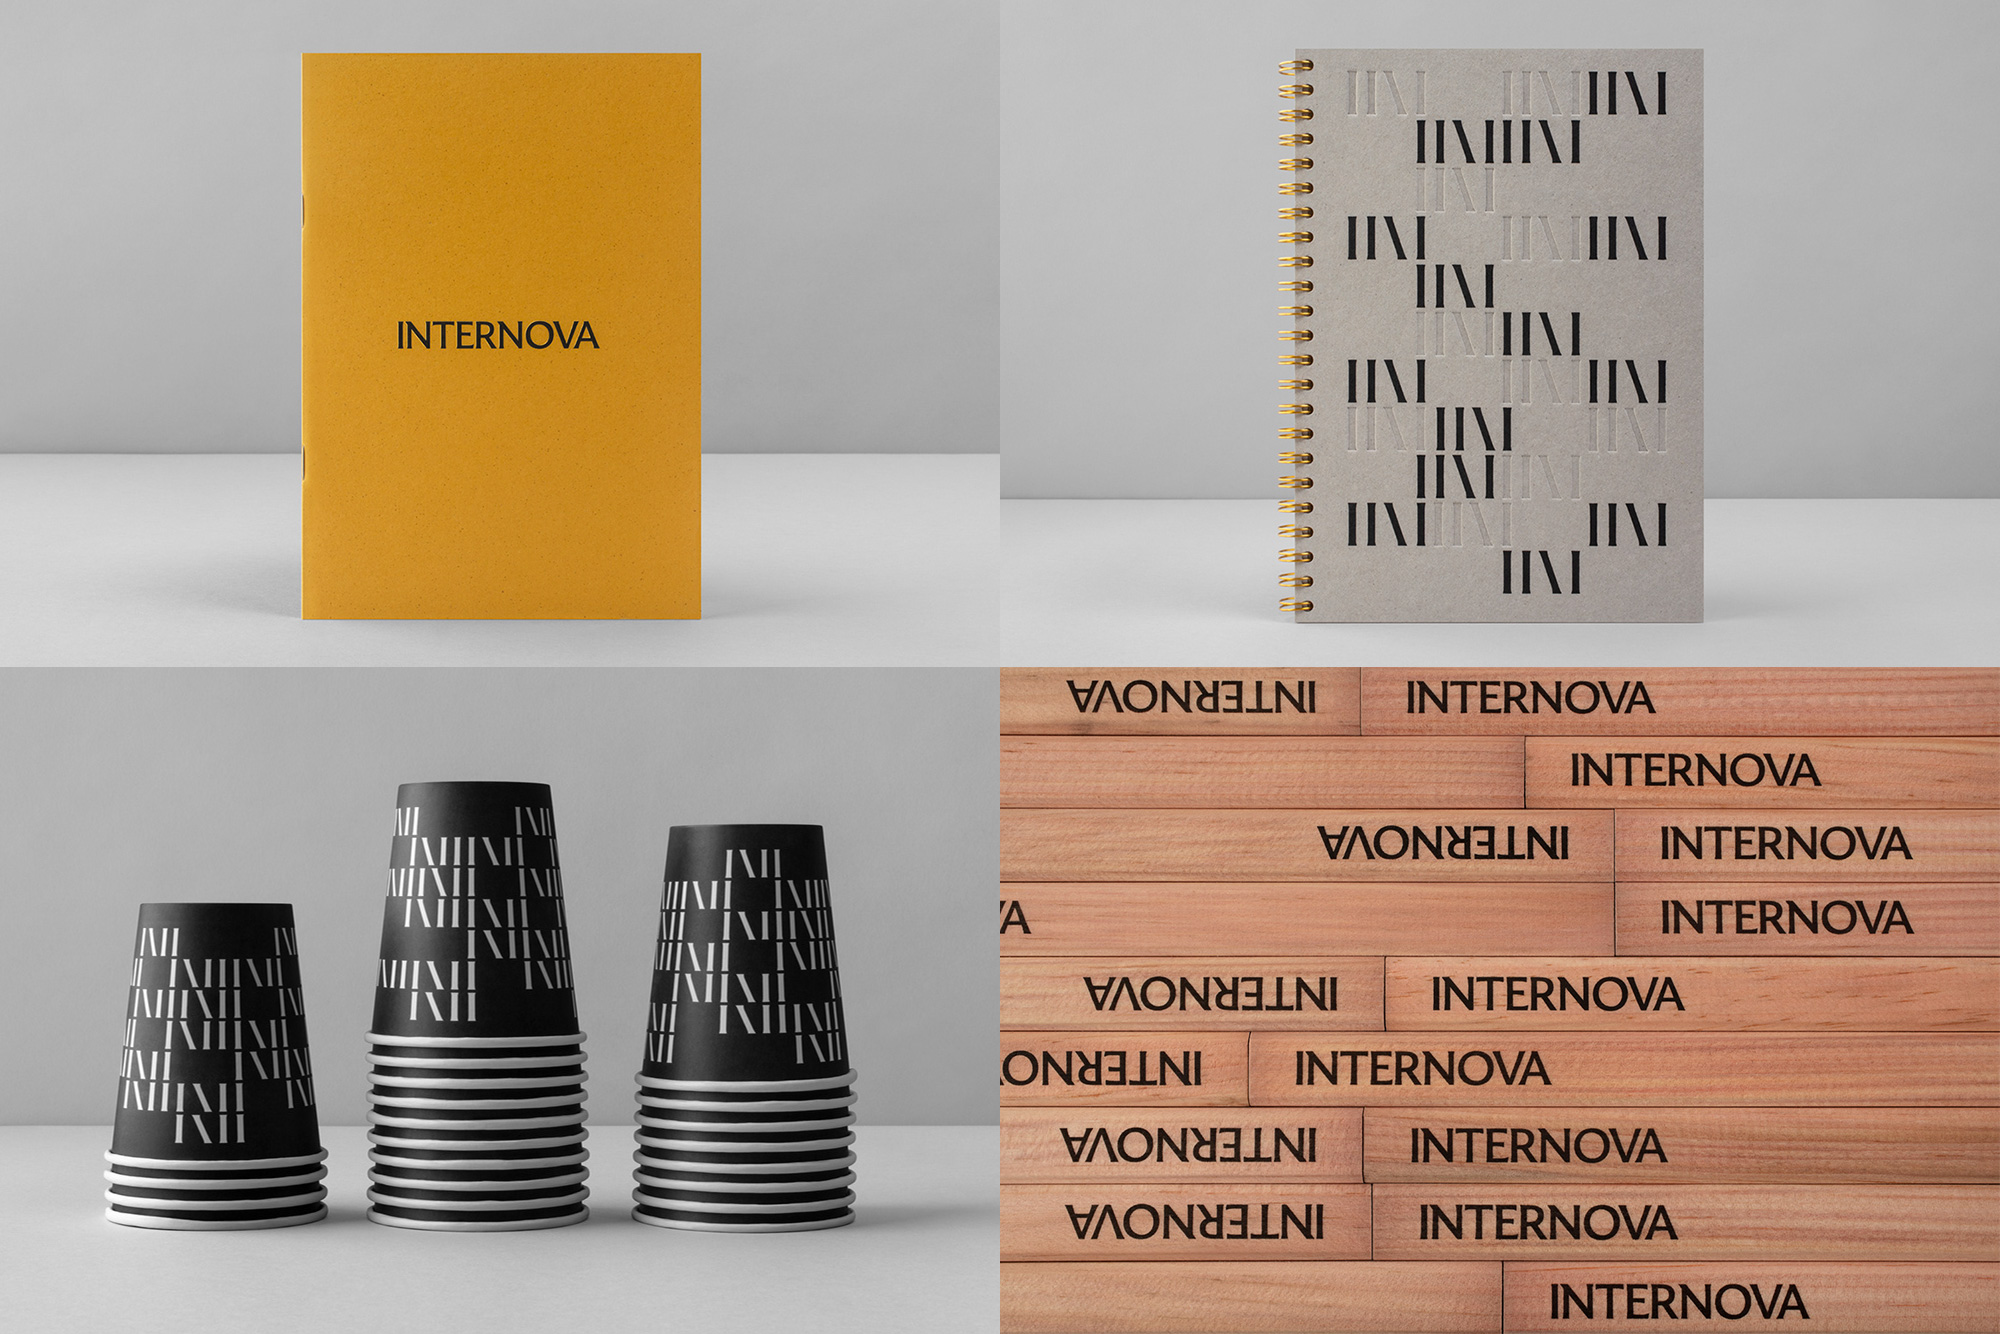 Internova by Bunch